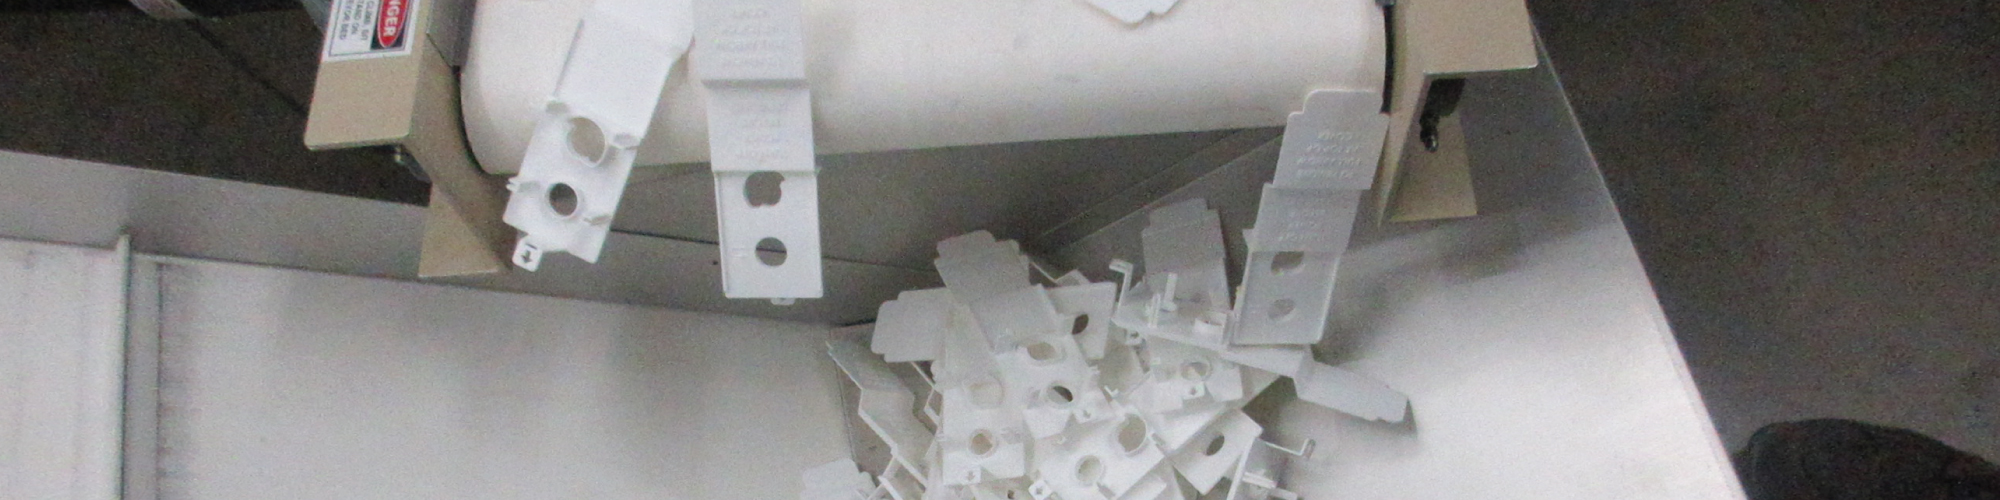 plastic-injection-molding-quality-mold-shop-mcminnville-tn-Featured-Image